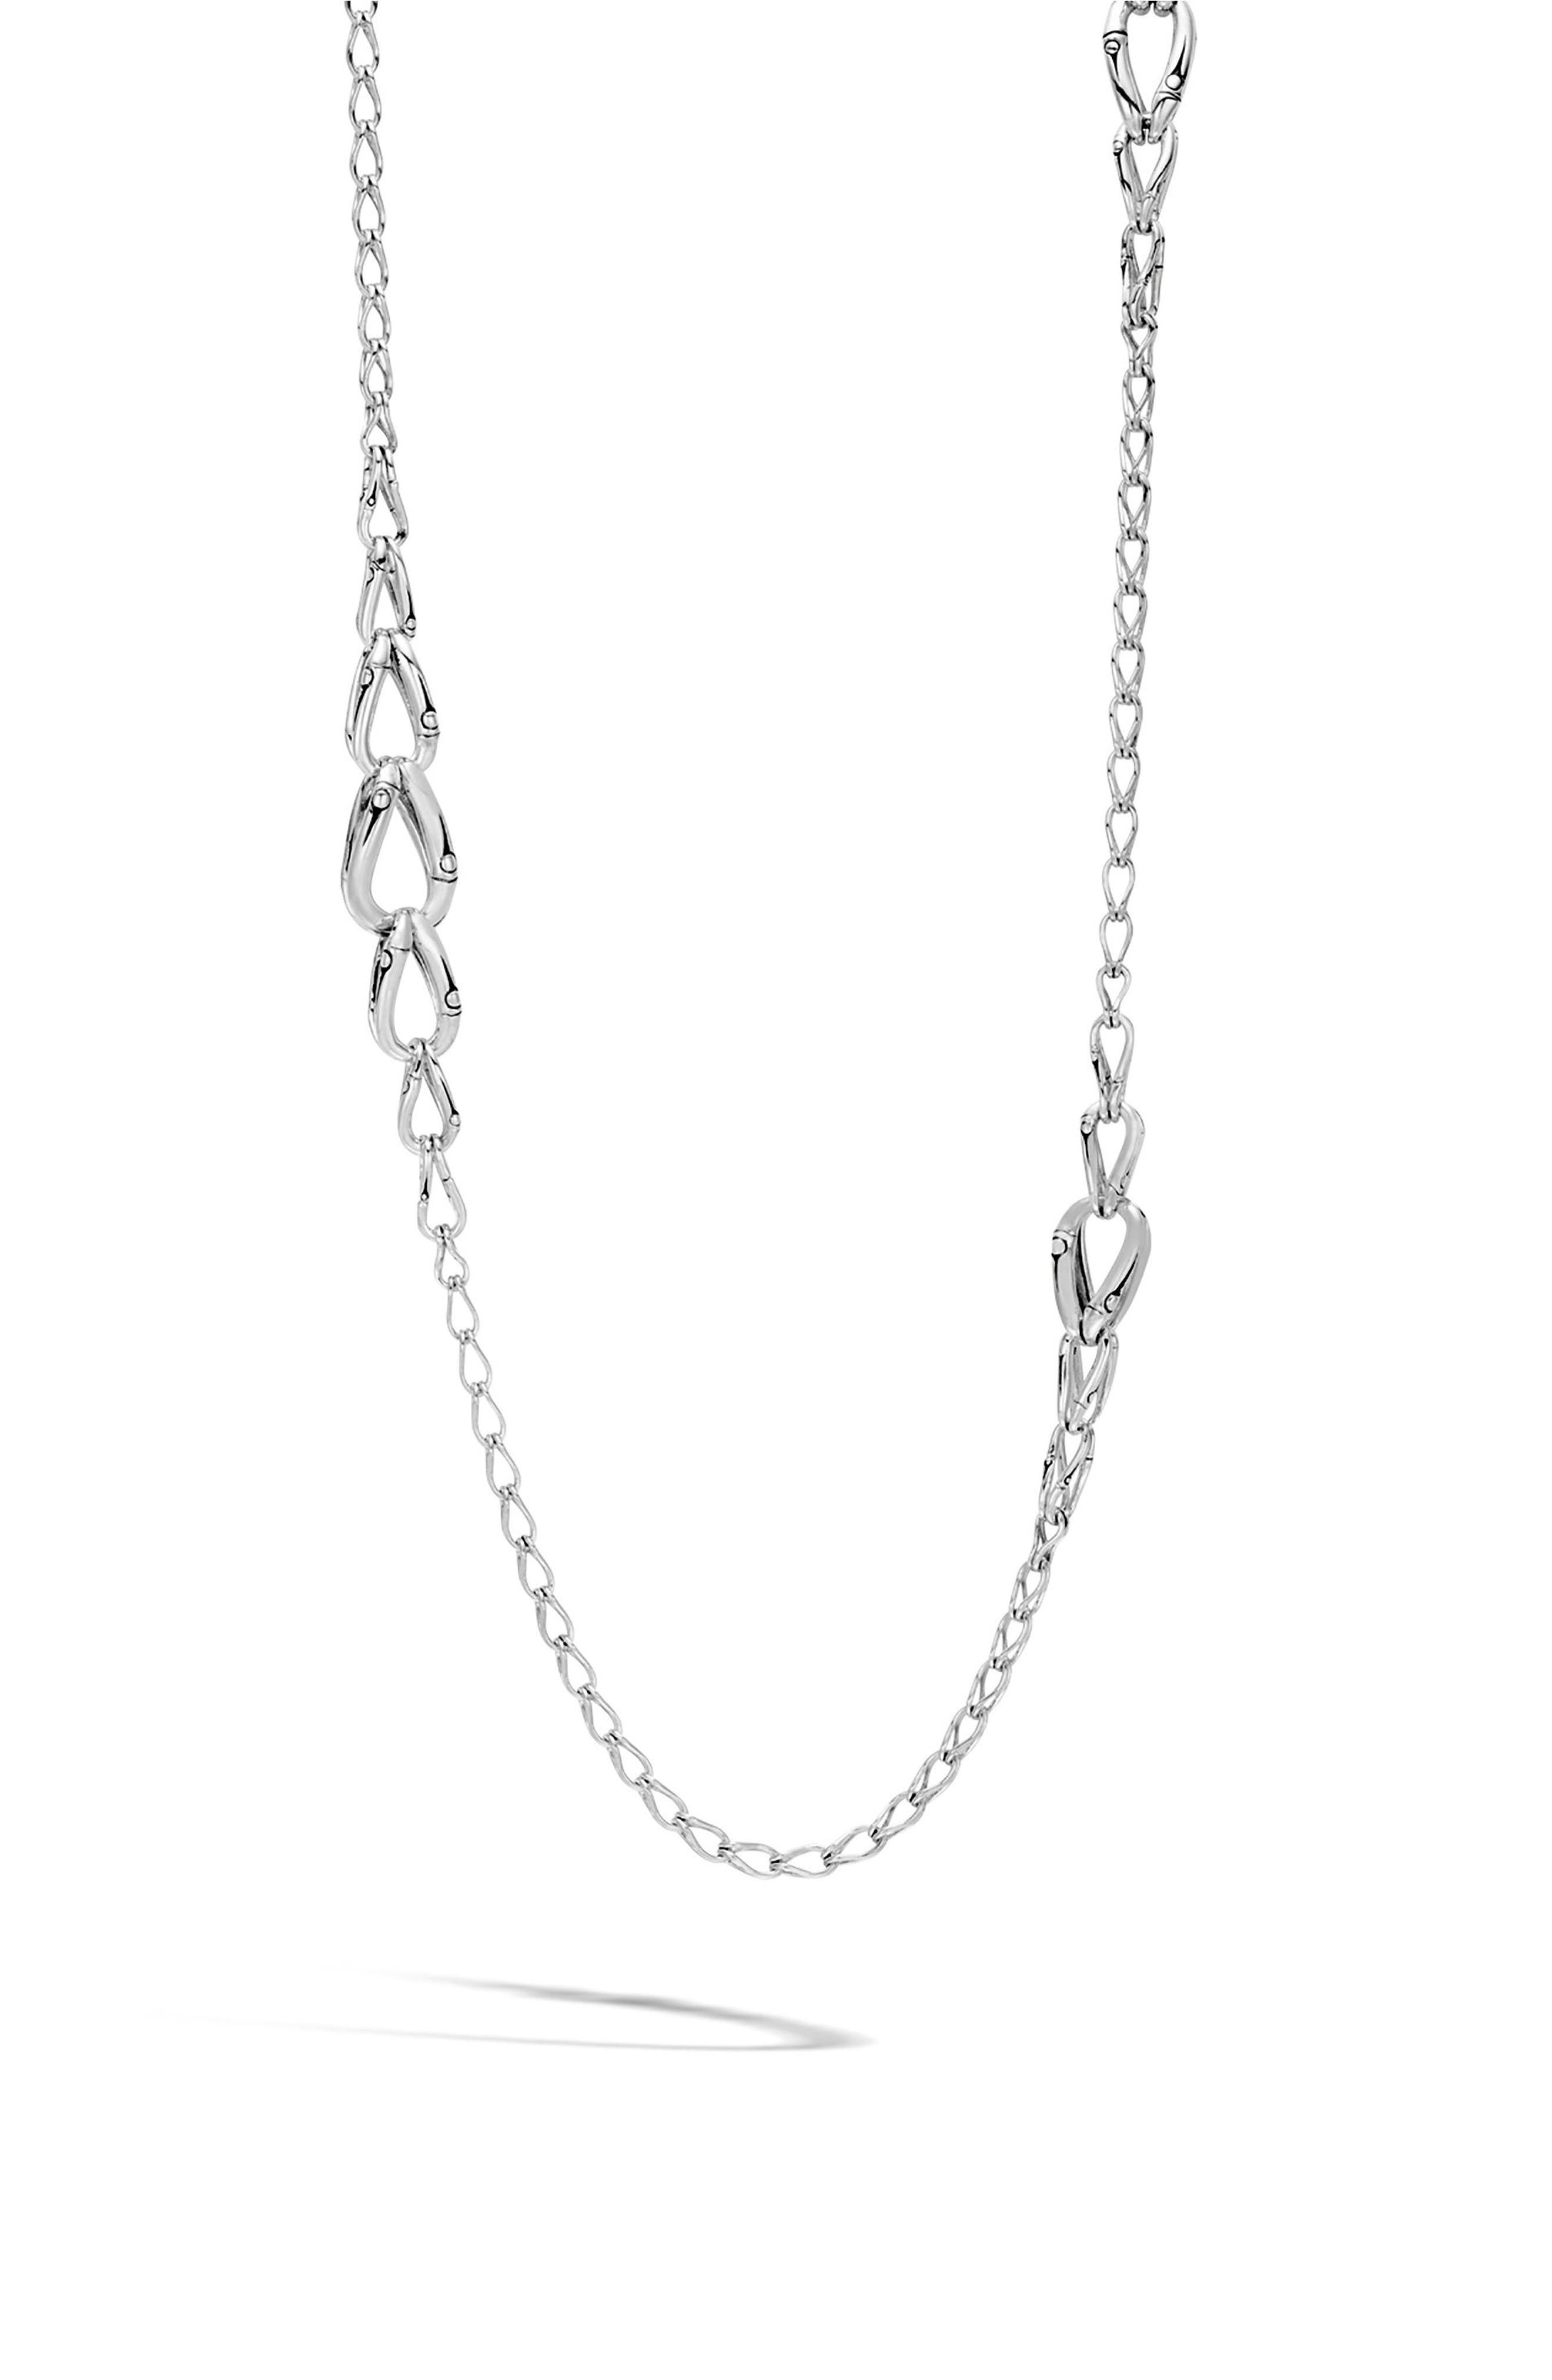 Bamboo Station Necklace,                             Main thumbnail 1, color,                             Silver